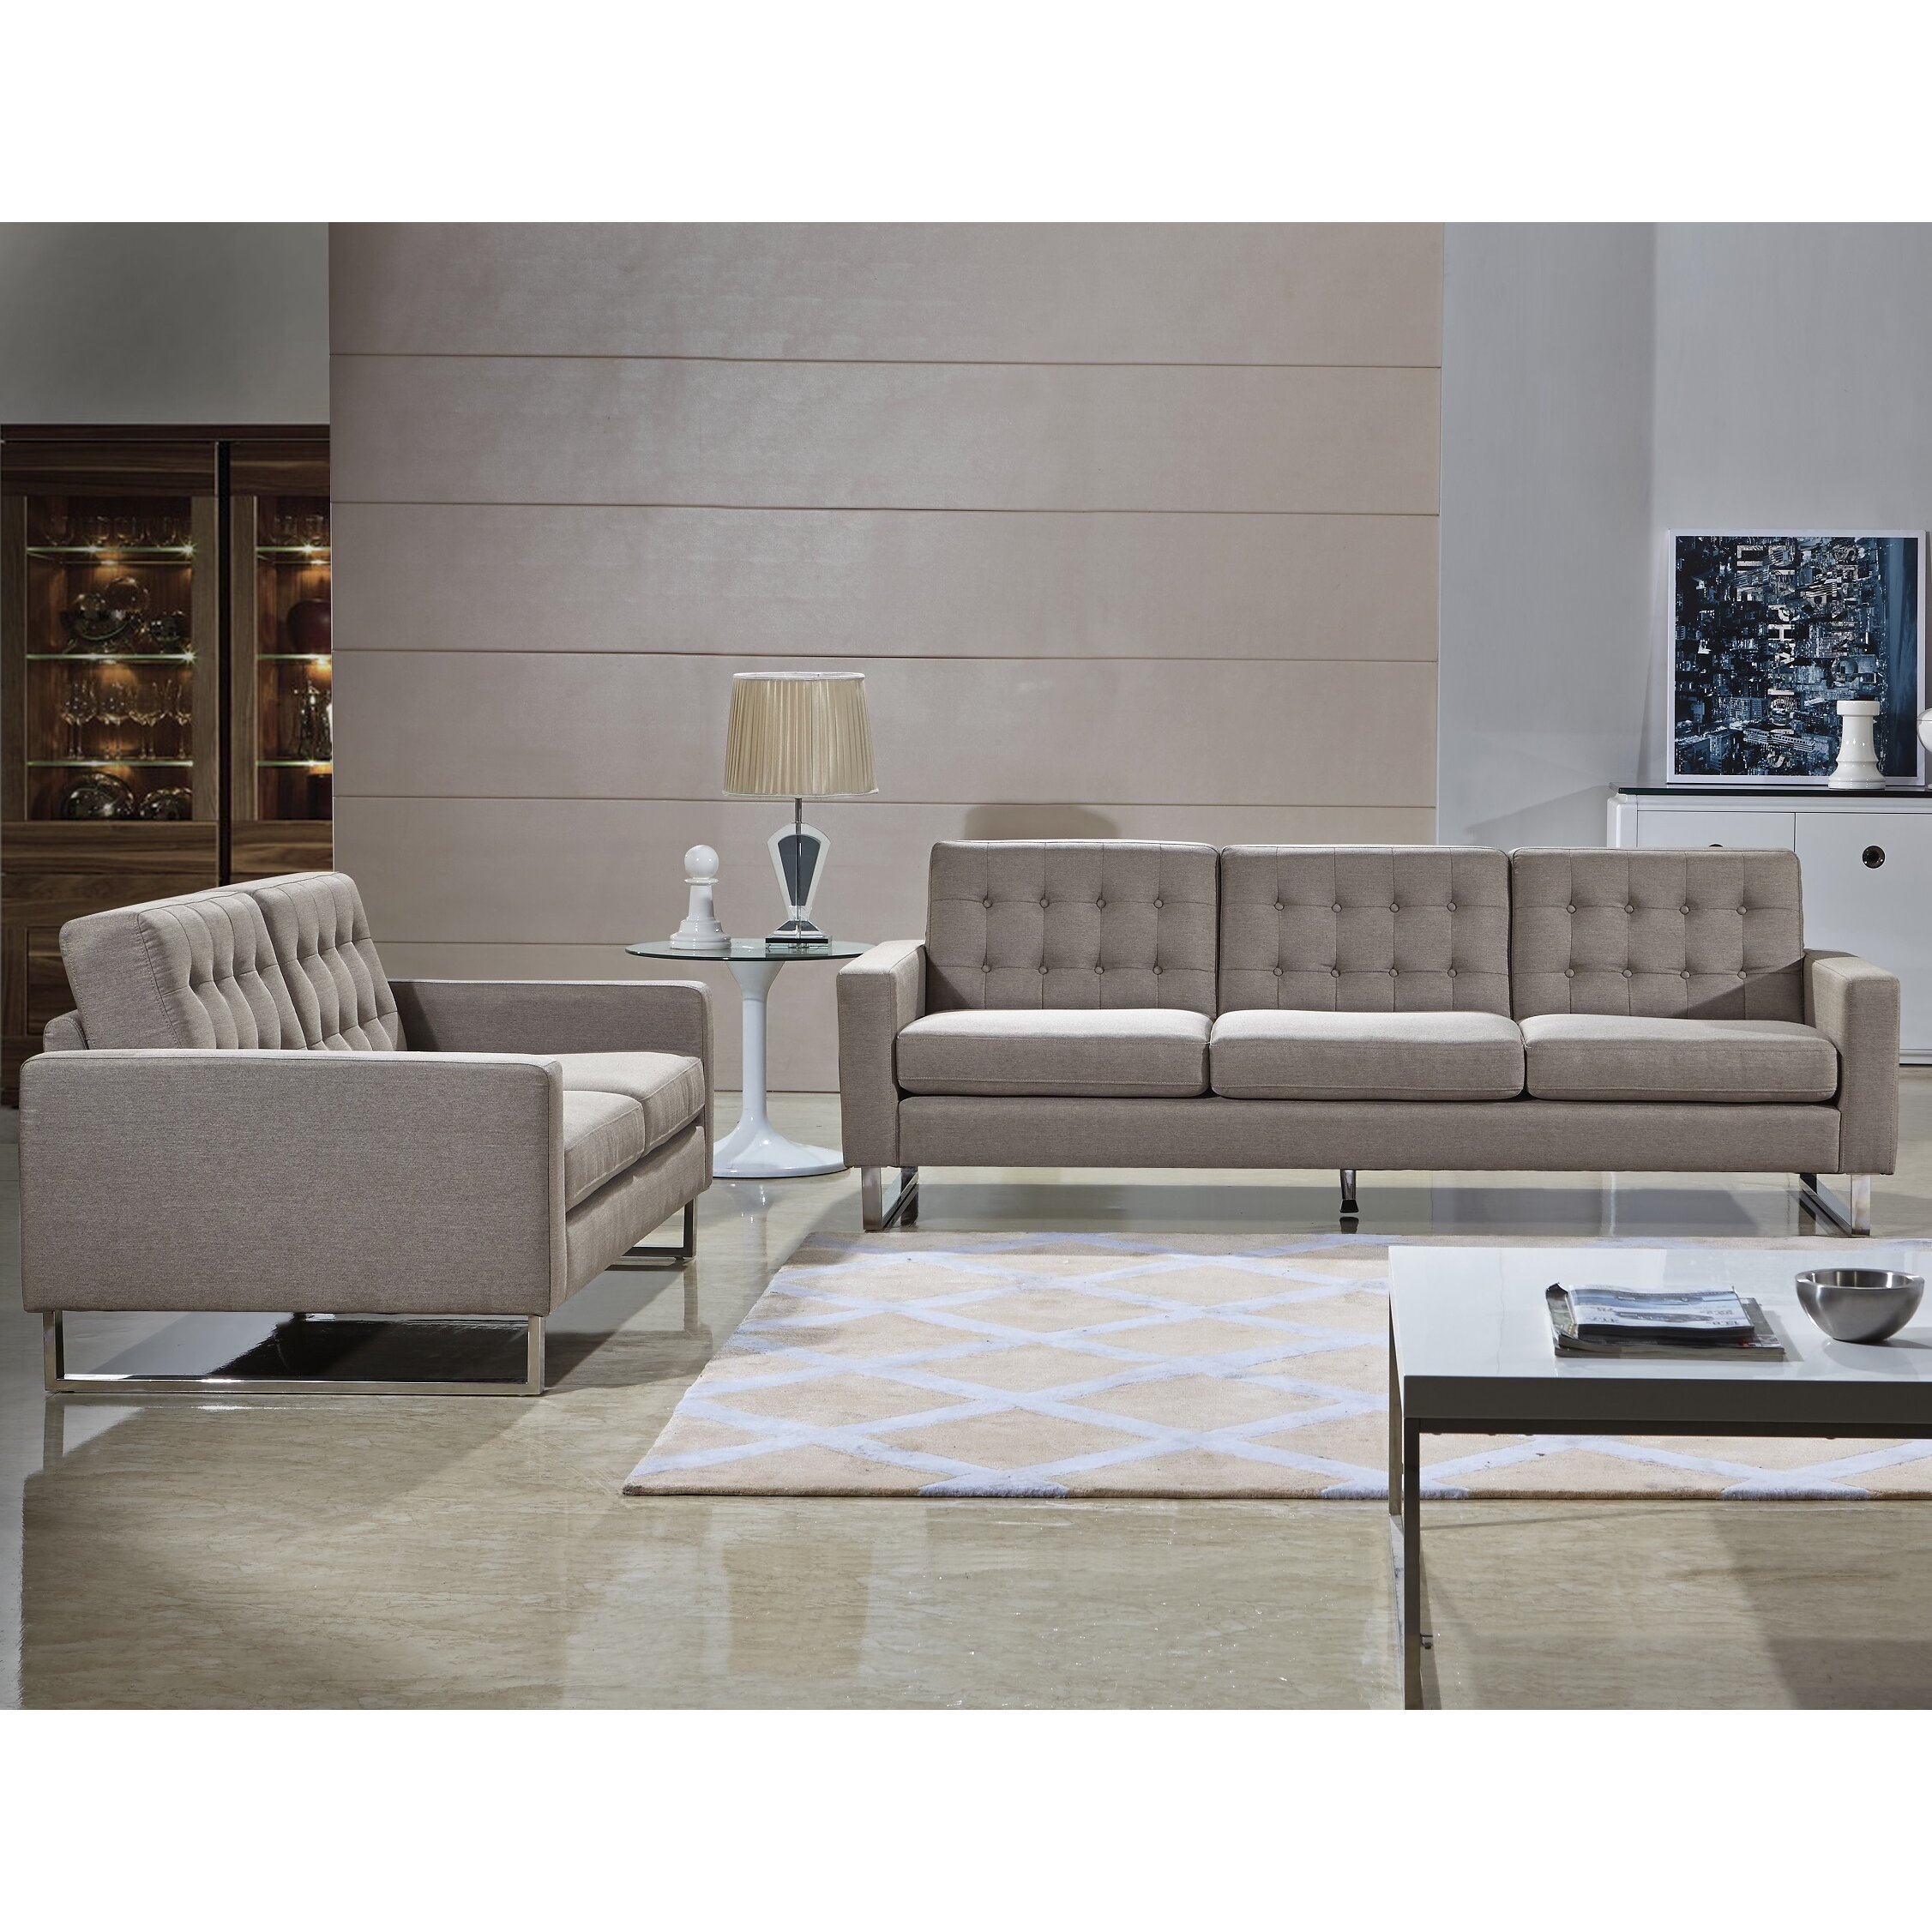 Aviano Sofa And Loveseat Set Revie Batar